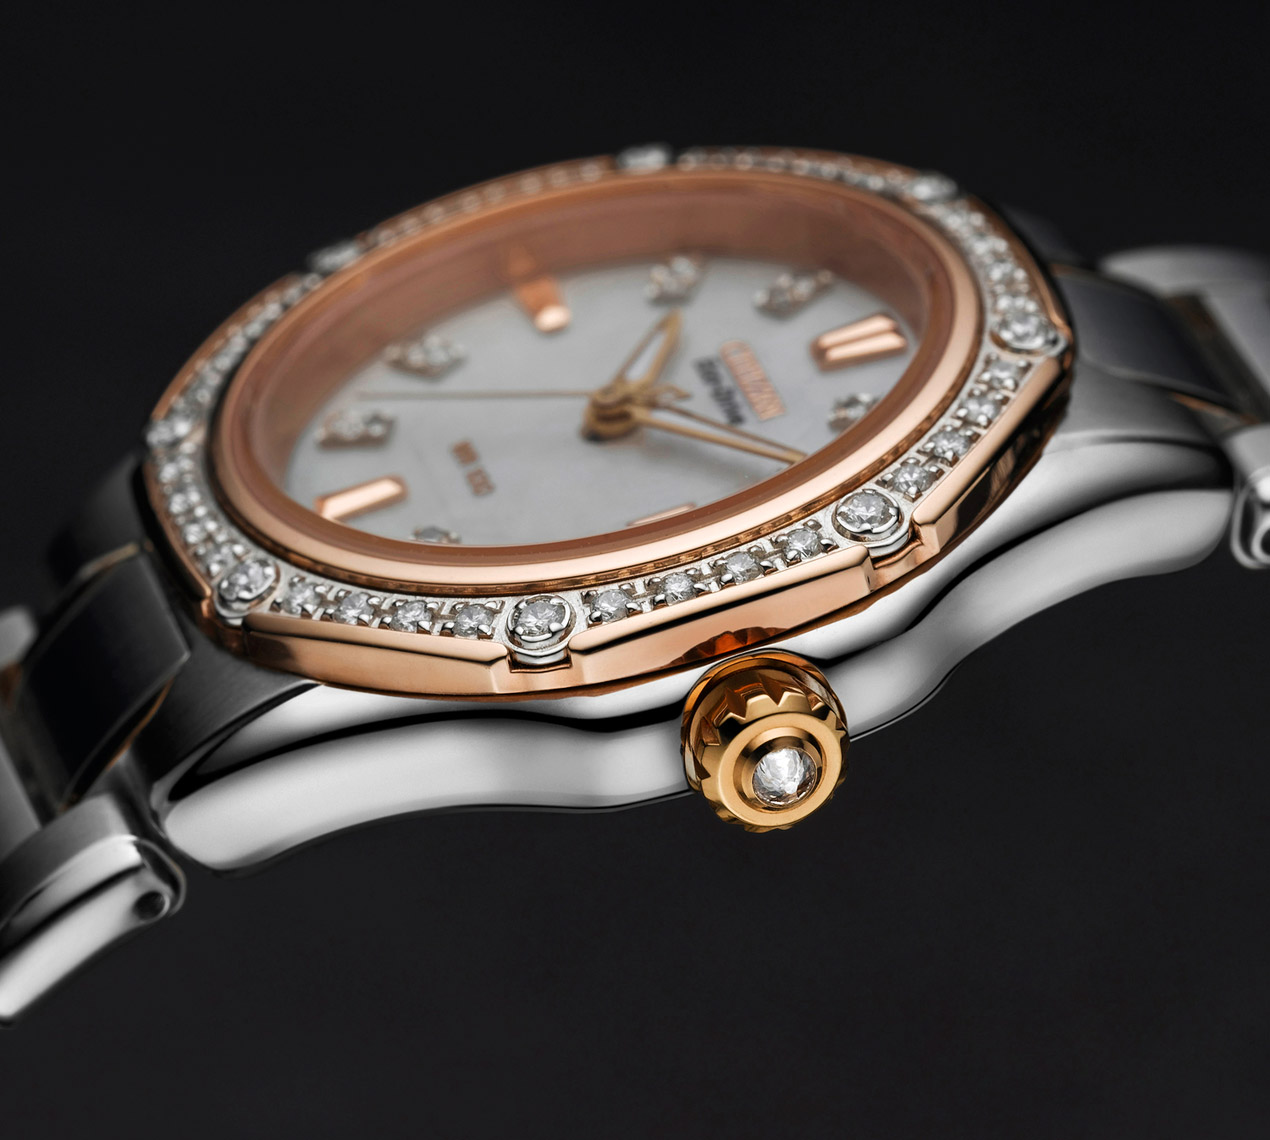 Citizen-diamond-crown-closeup